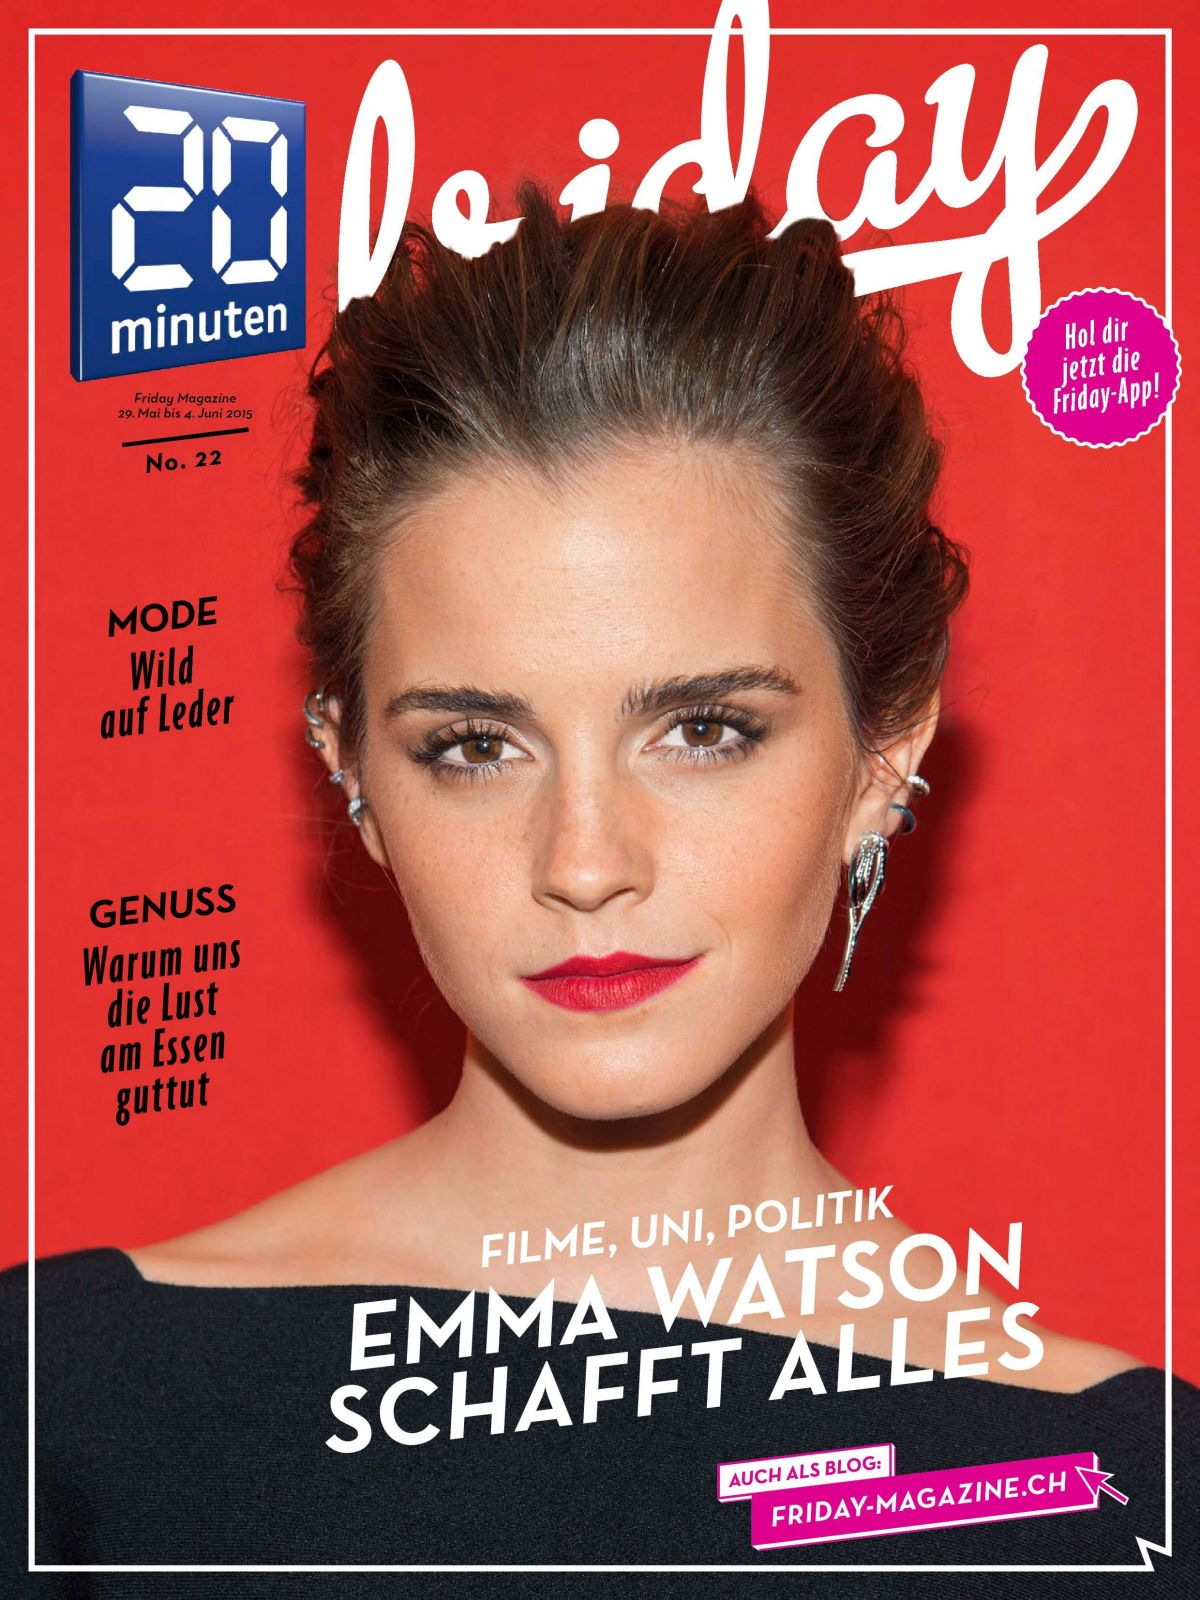 EMMA WATSON on the Cover of 20 Minuten, May/June 2015 Issue